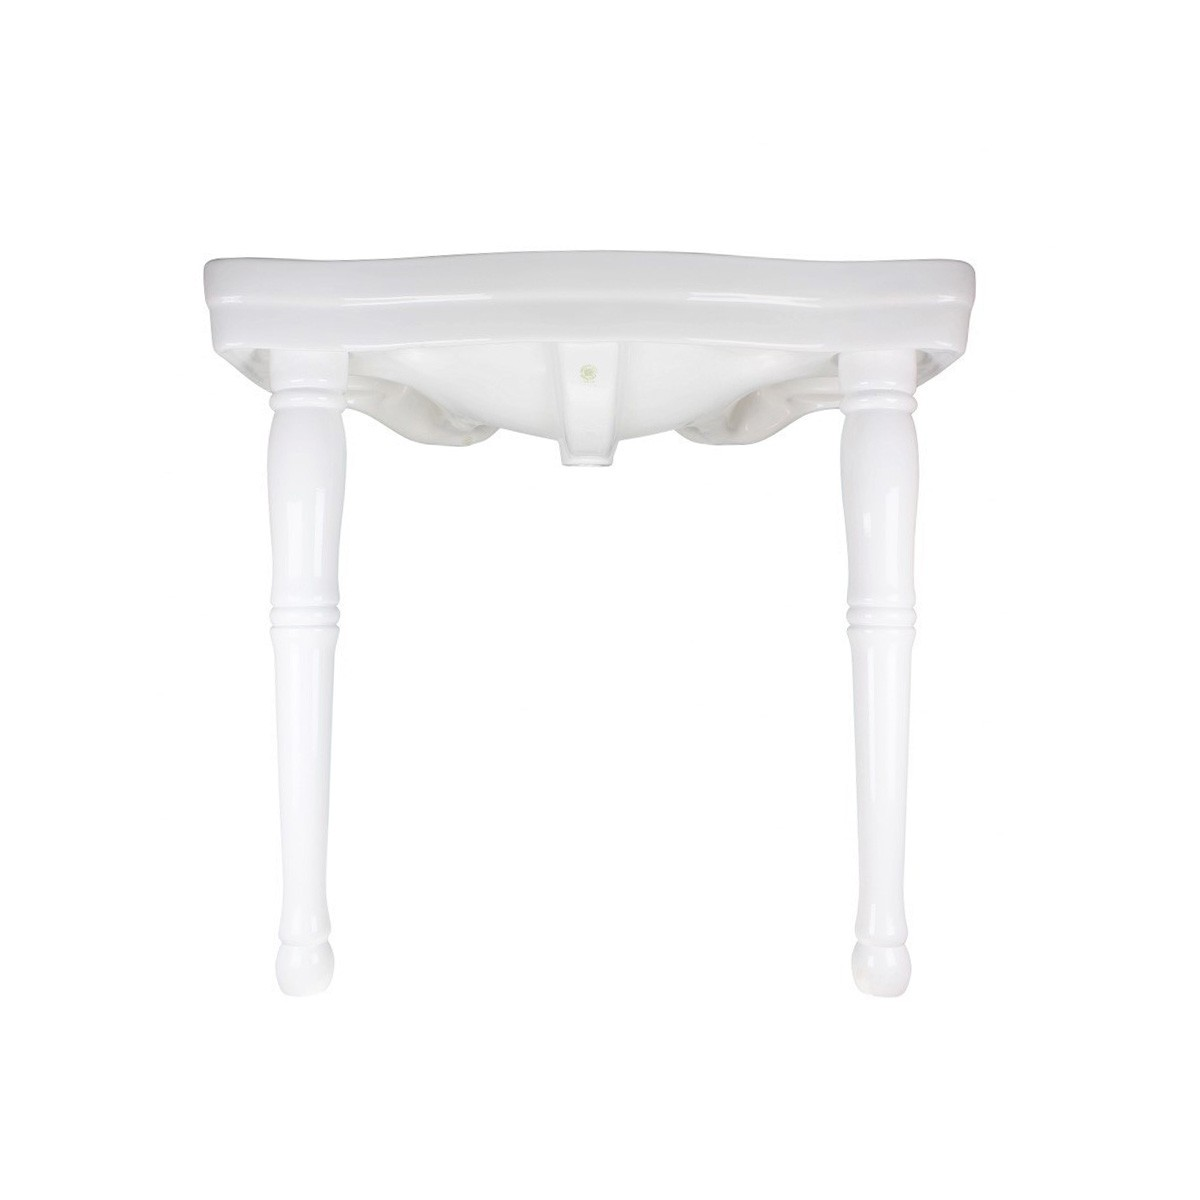 White Console Sink with Widespread Faucet Holes and Hard Wood Spindle Style Legs Glossy Console Bathroom Sink Console Sink With Spindle Legs Console Sinks For Small Bathrooms